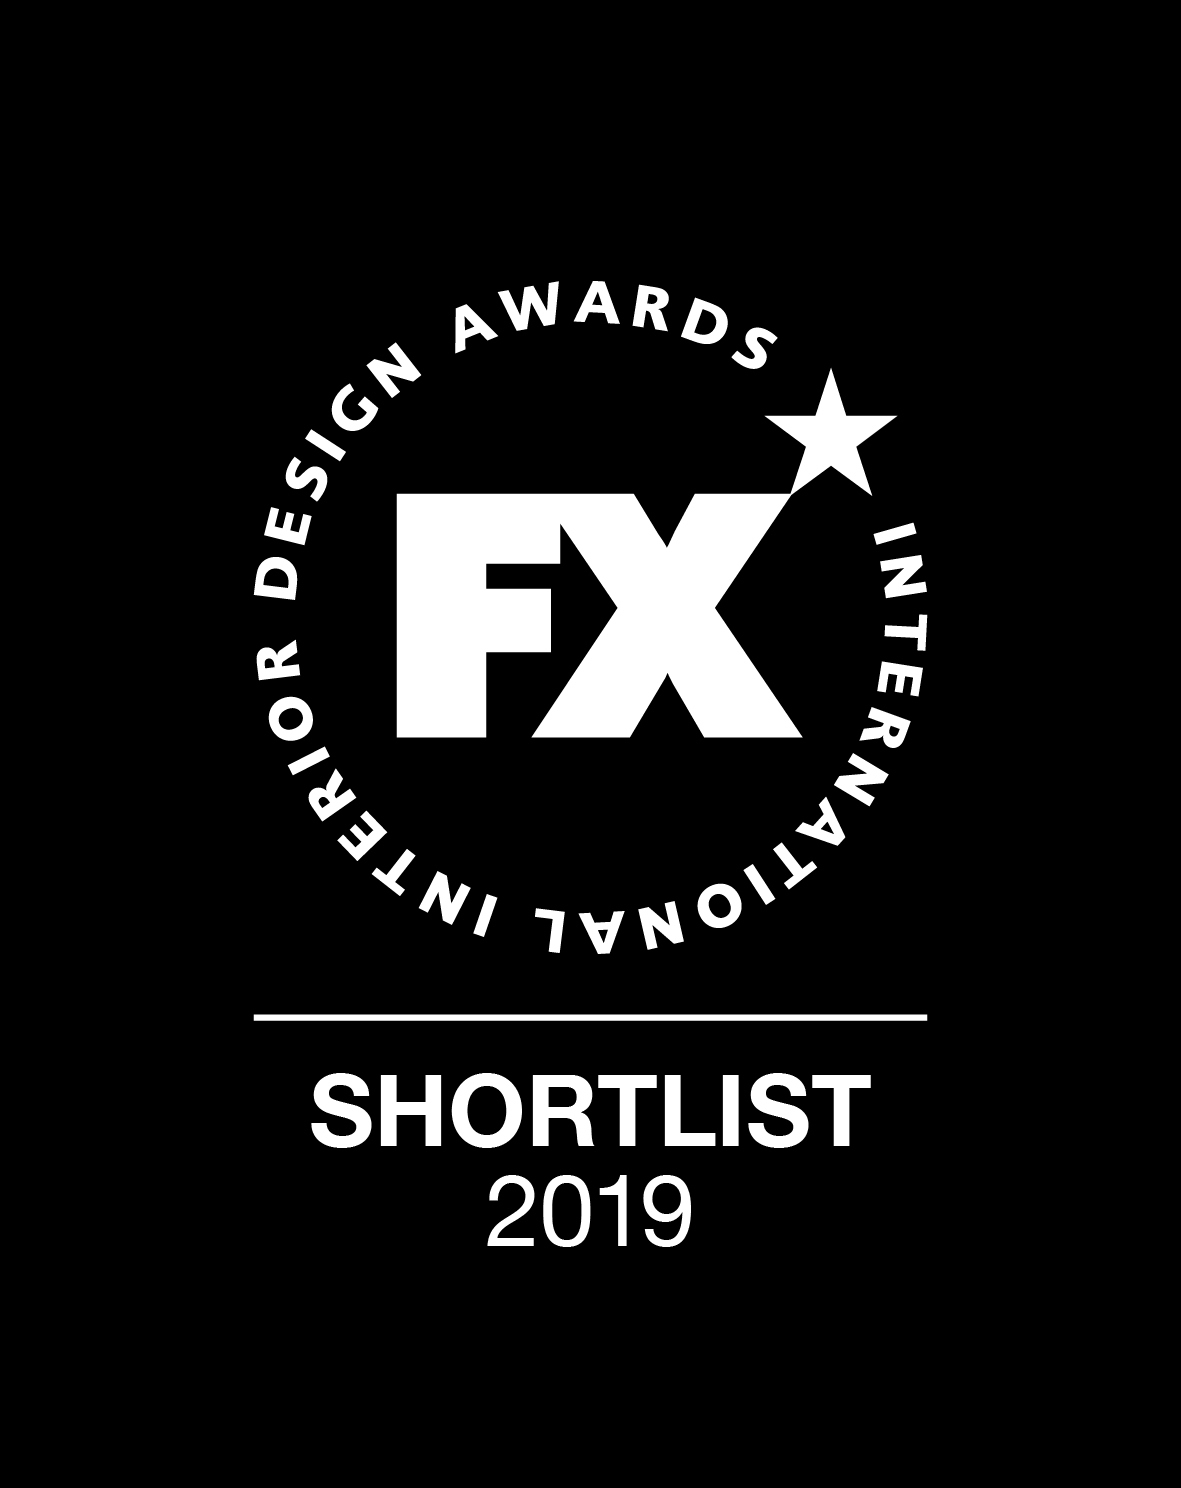 Congratulations to Bob by Bisley, Naava from Office Blueprint, WPP Amsterdam by BDG architecture + design and Muse Acoustic Panels by Woven Image who have been shortlisted for 2019 FX Awards